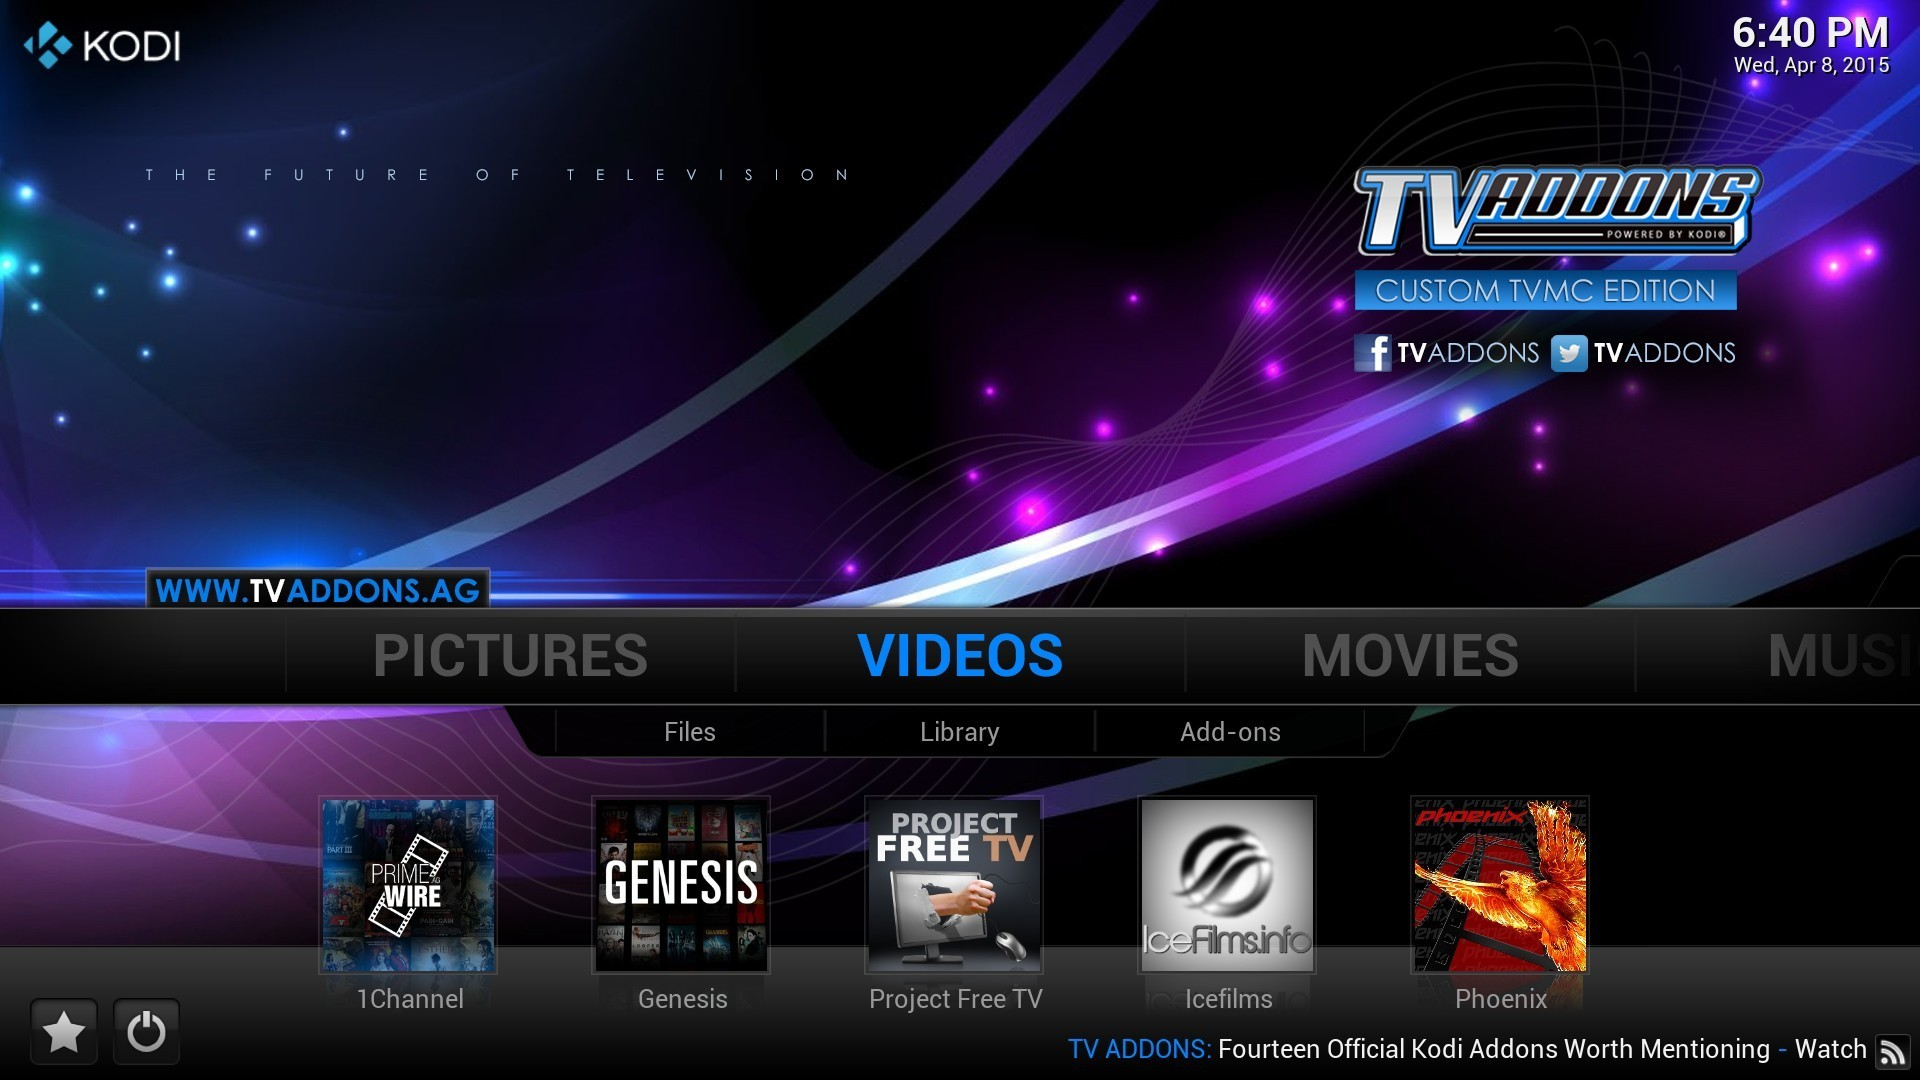 1920x1080  Xbmc Wallpaper 1080p - WallpaperSafari